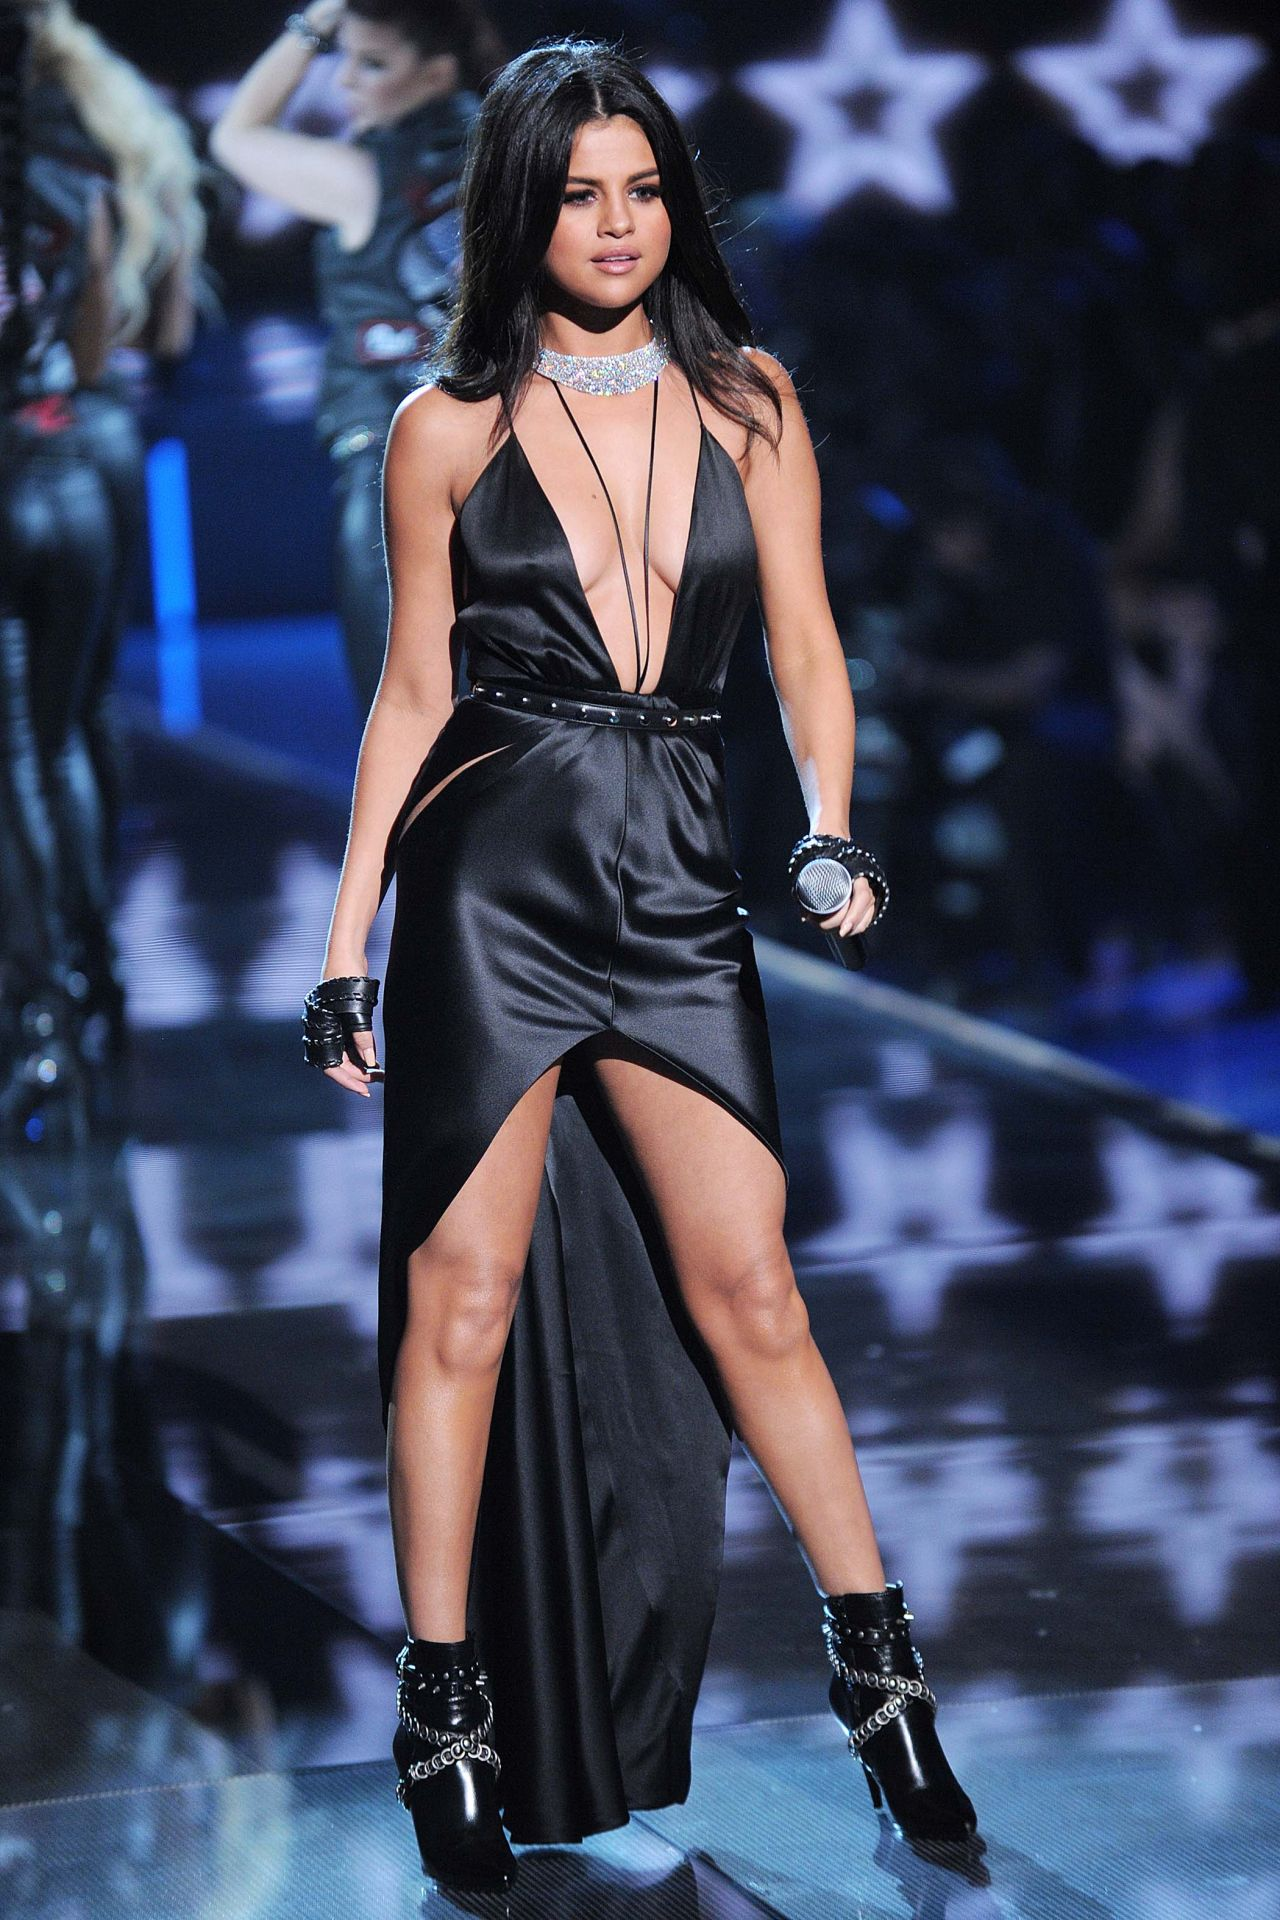 Selena Gomez  Performs at Victorias Secret Fashion Show in NYC November 2015